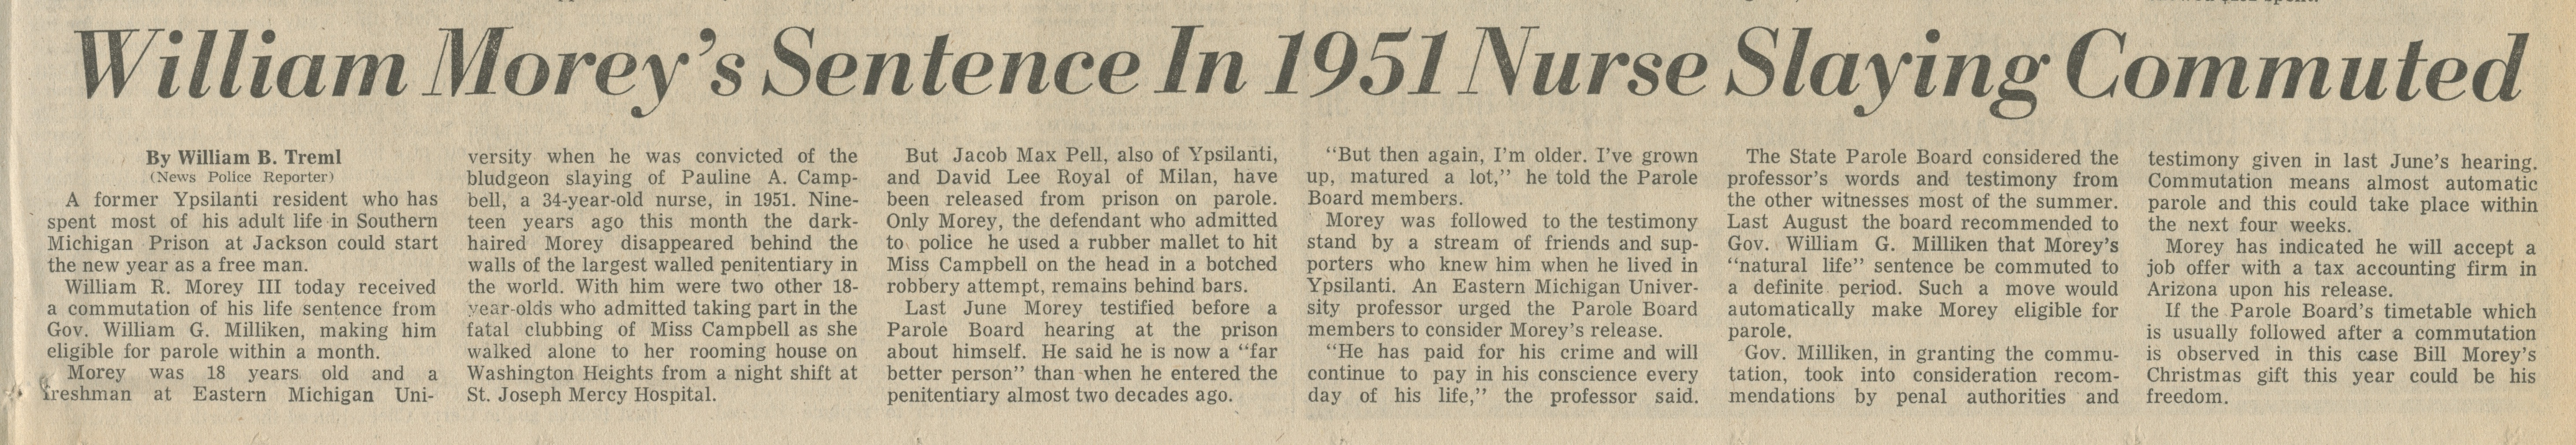 William Morey's Sentence In 1951 Nurse Slaying Commuted image